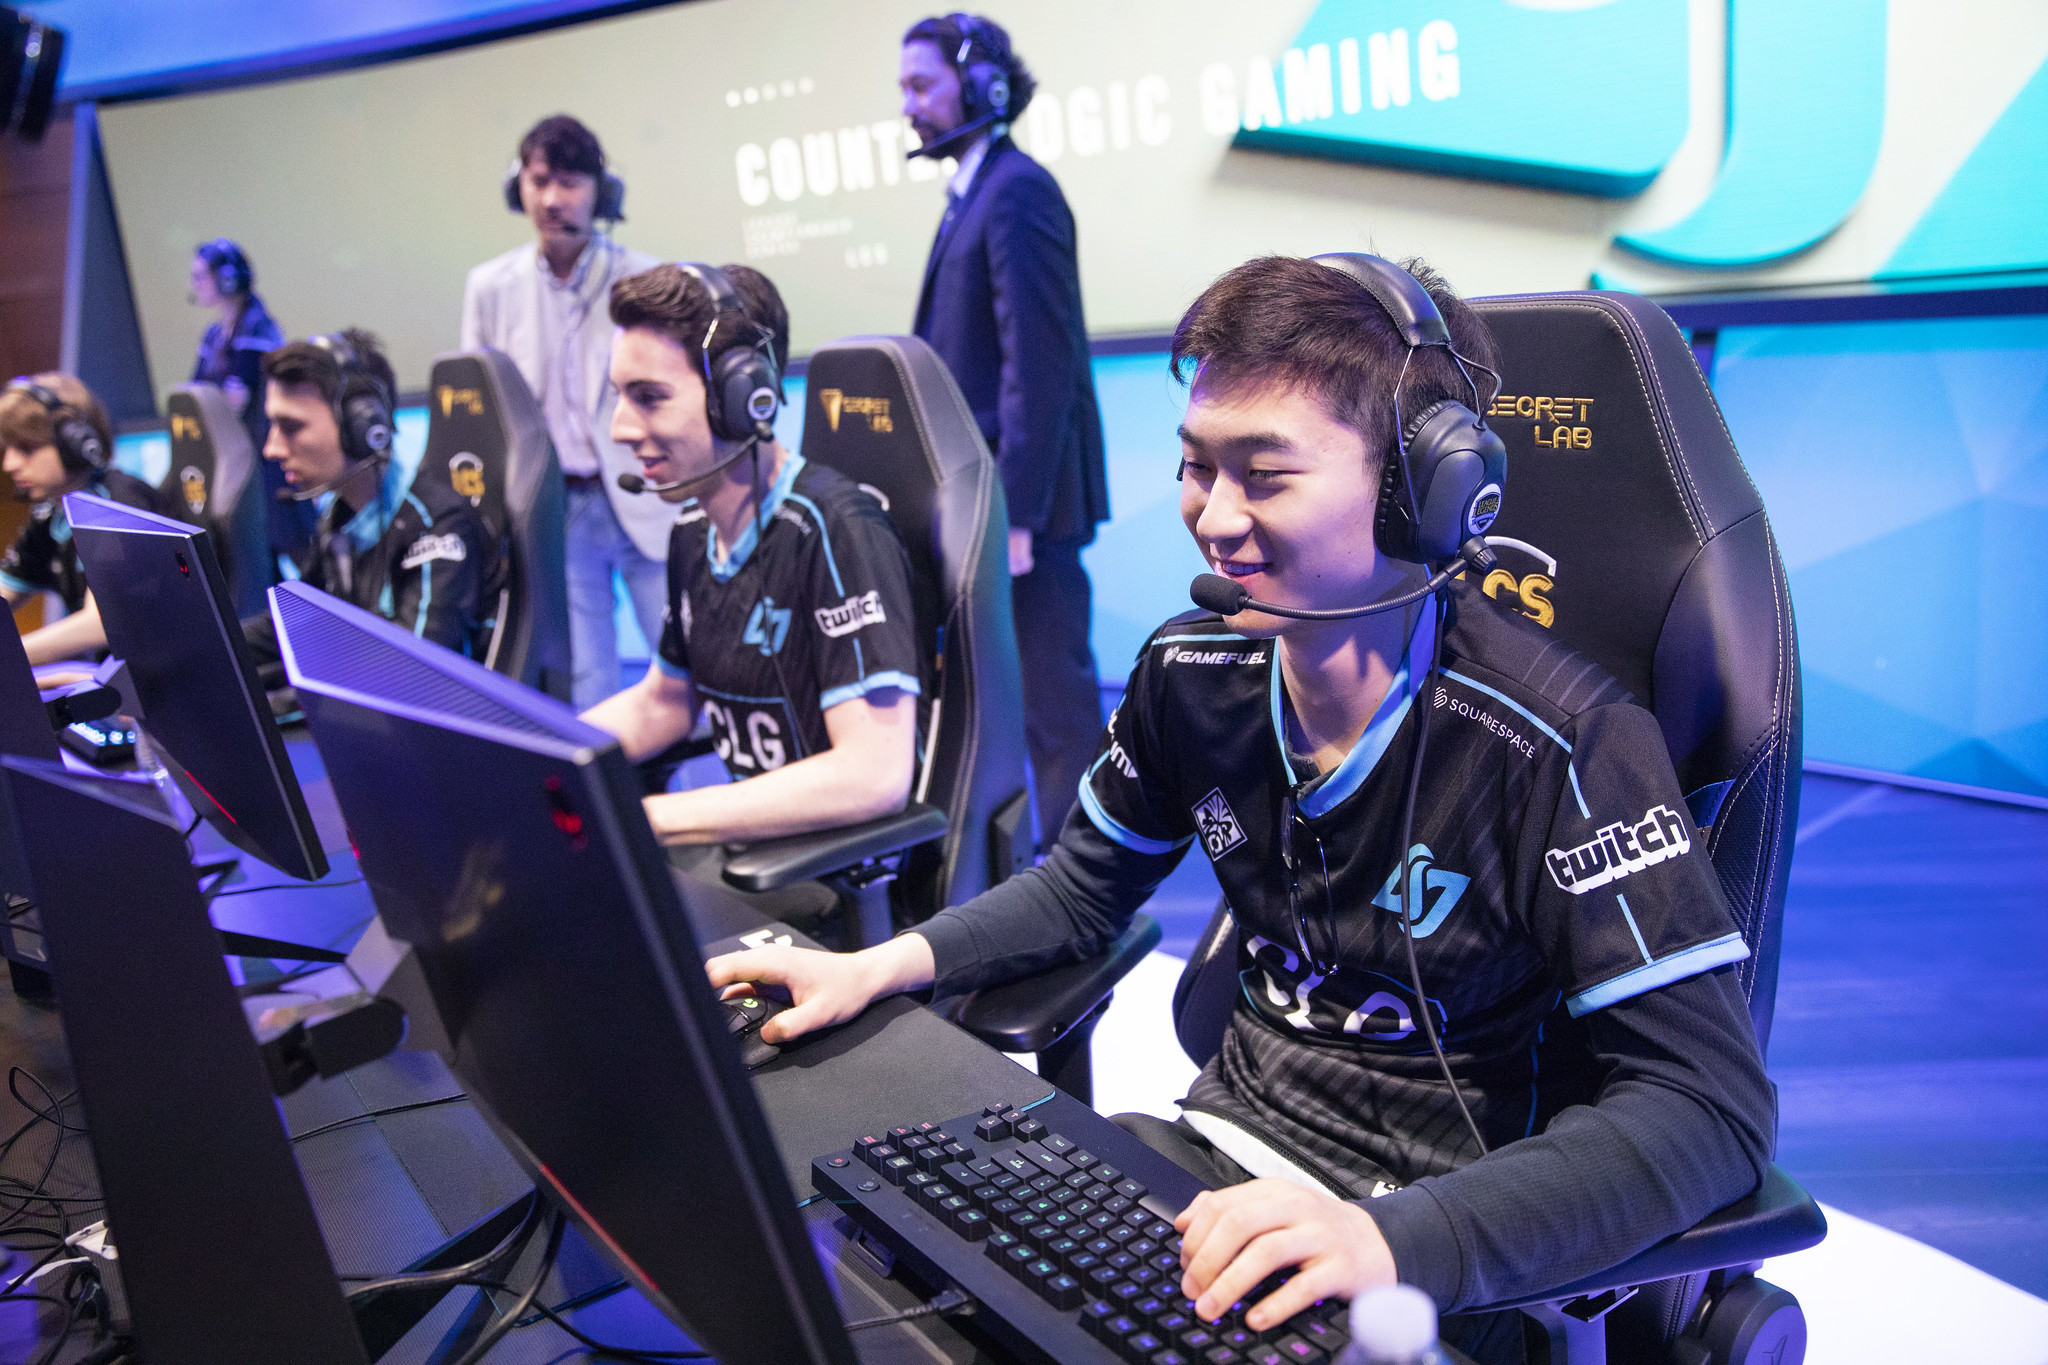 Despite some growing pains with Rain, CLG is holding strong in the LCS (Photo courtesy of Riot Games)